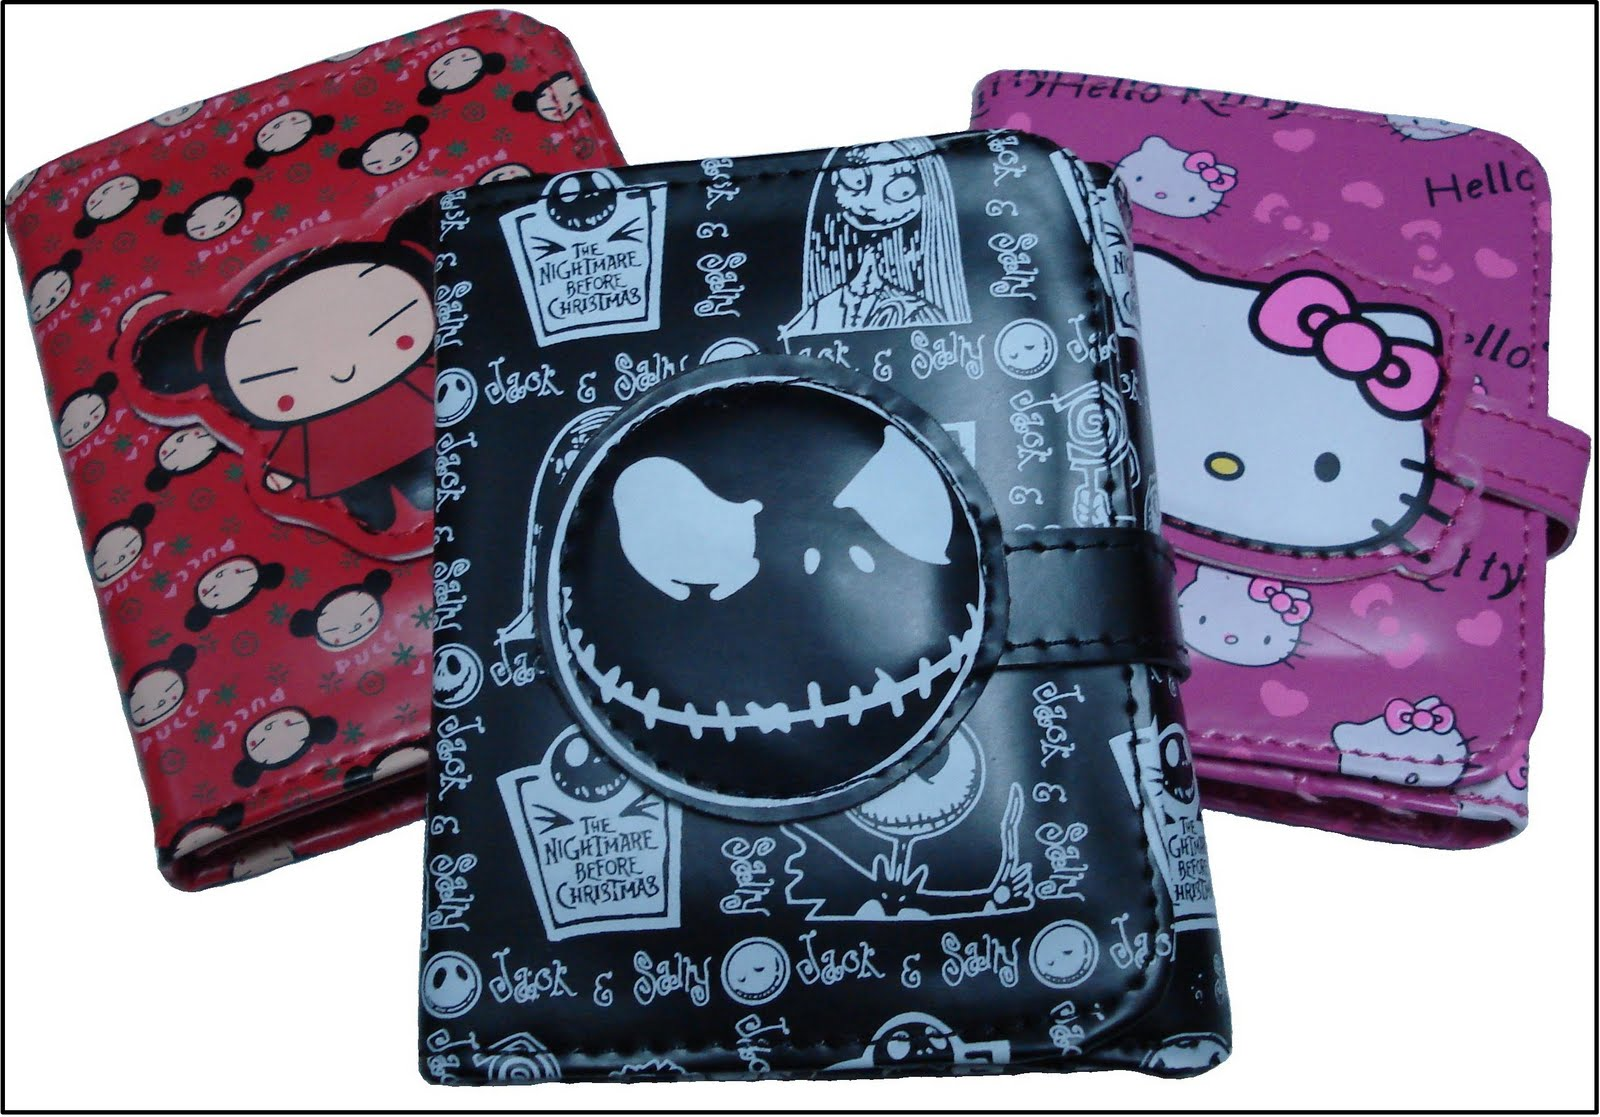 Billeteras de: Pucca, Hello Kitty y Jack.